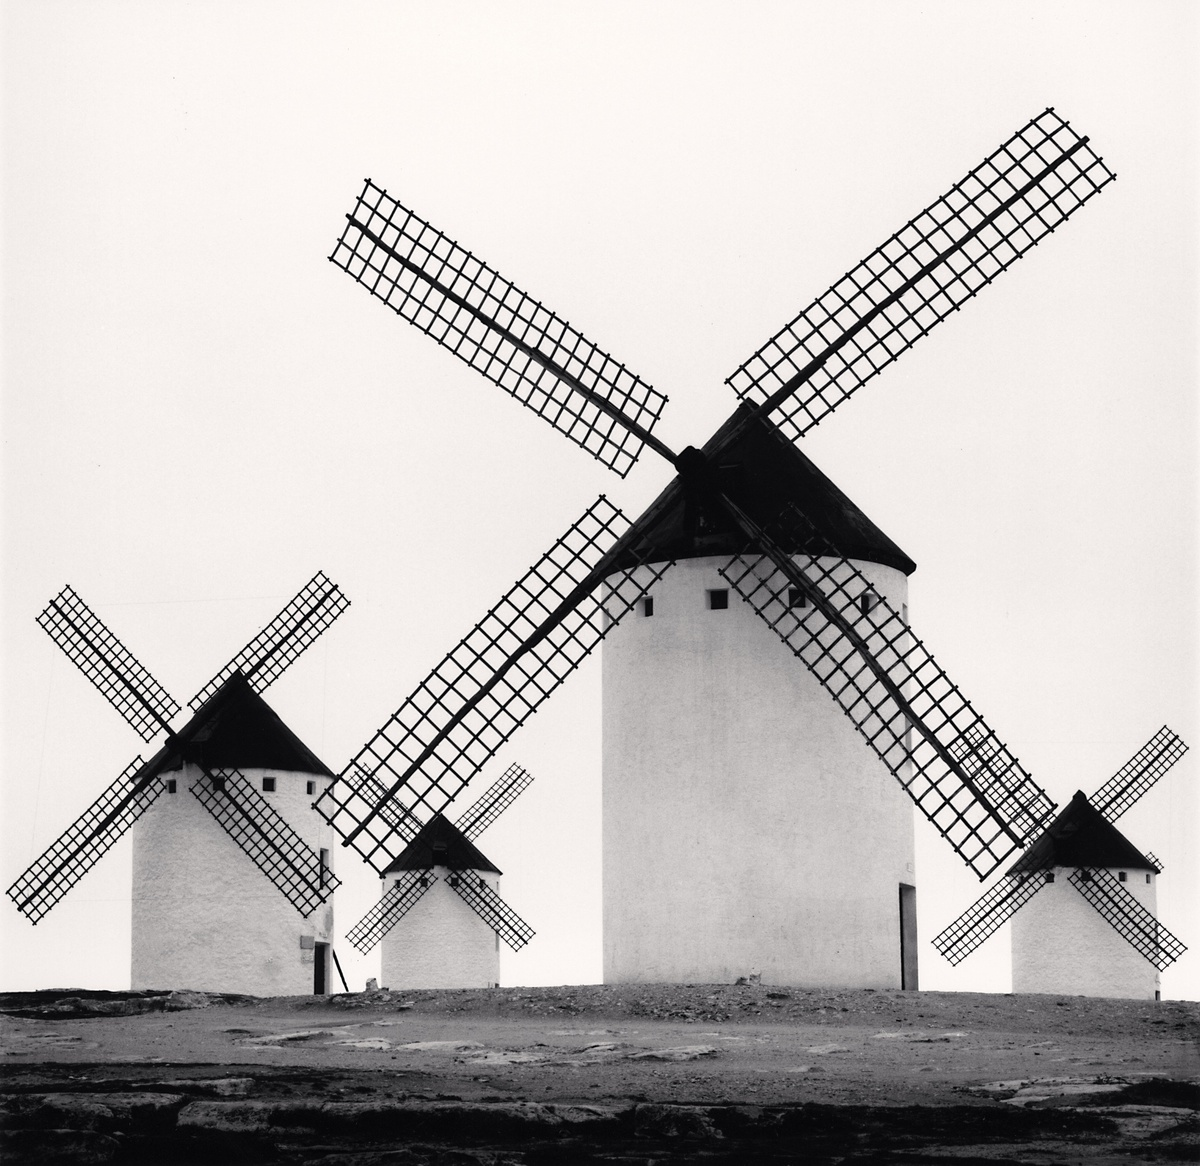 Michael Kenna Quixote's Giants, Study 5, Campo de Criptana, Spain 1996 Sepia Toned Silver Gelatin Print From An Edition Of 45 8 x 8 Inches